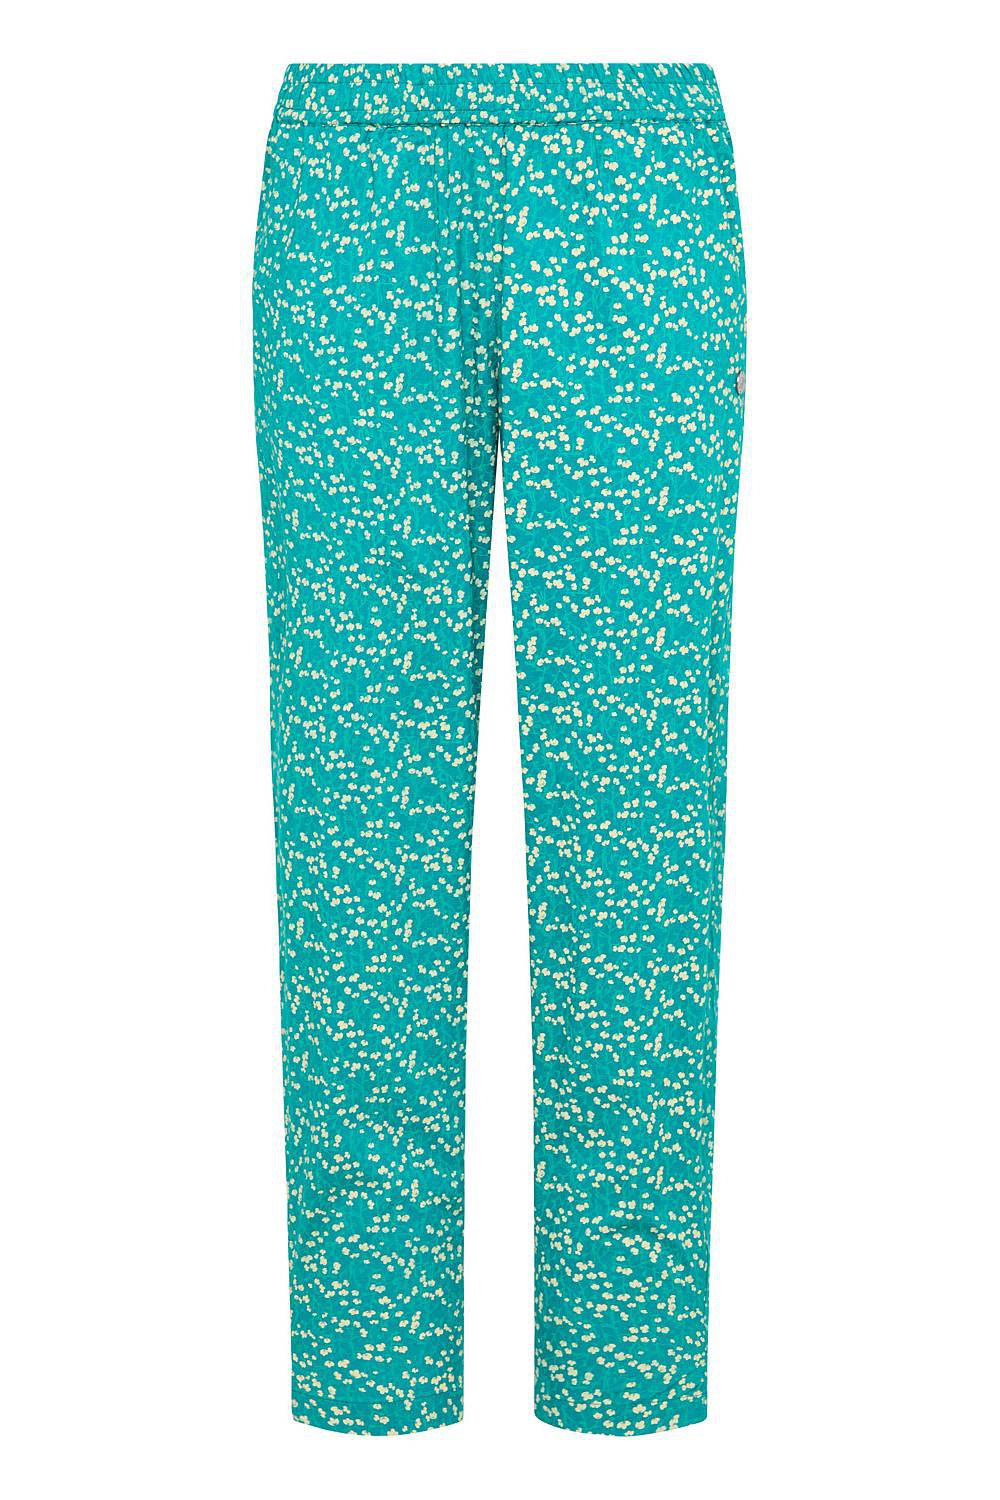 Tranquillo flowery summer trousers, blue trousers